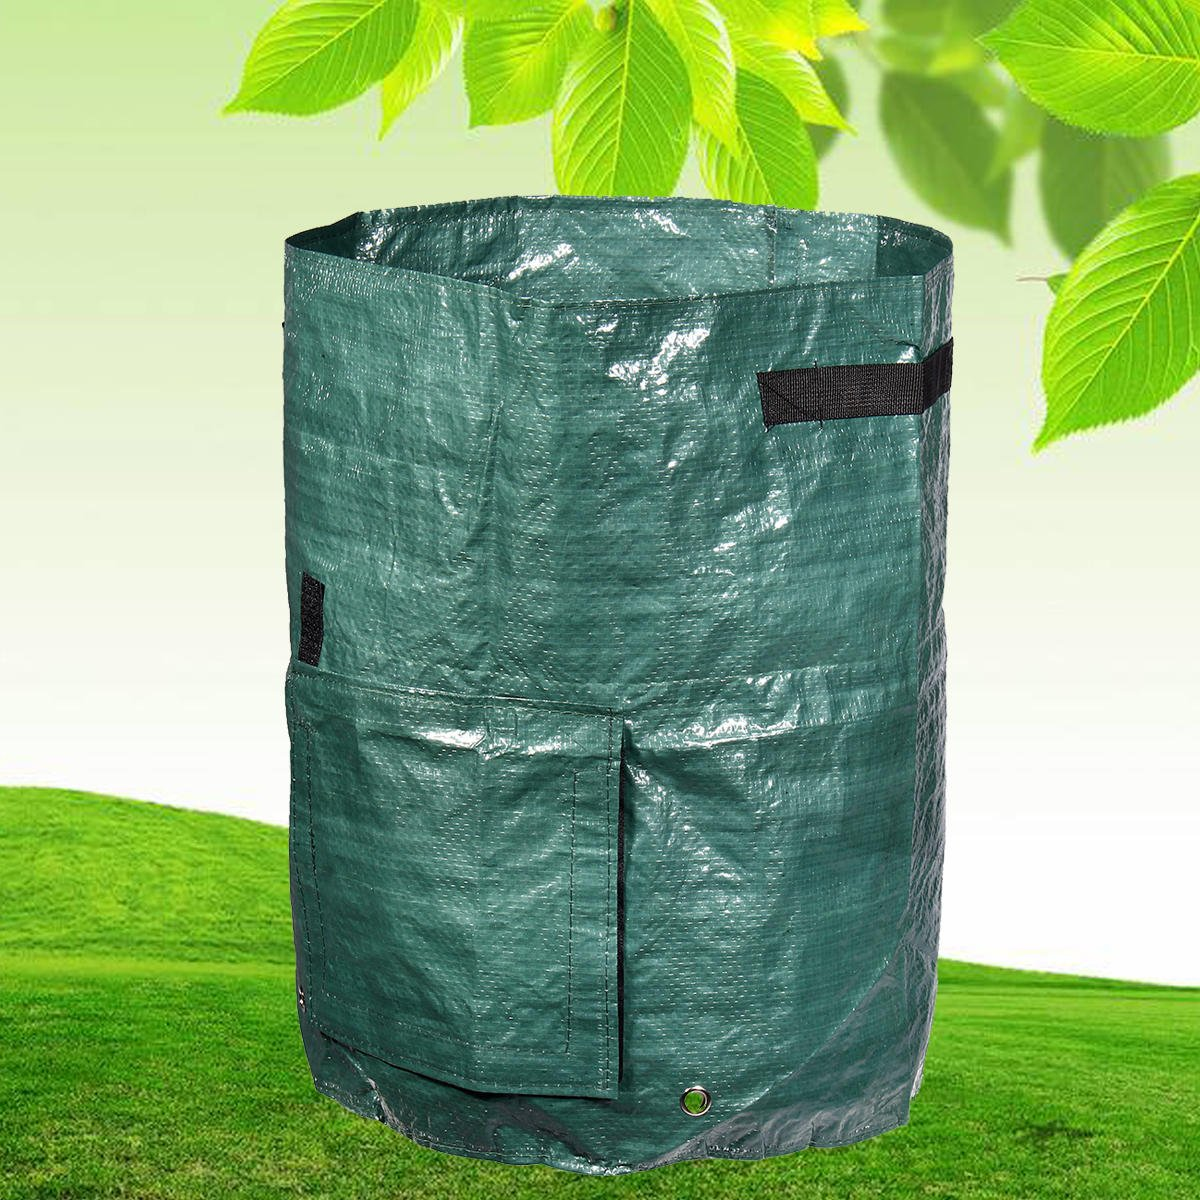 Organic Composter - Sports & Outdoor - 1PCs